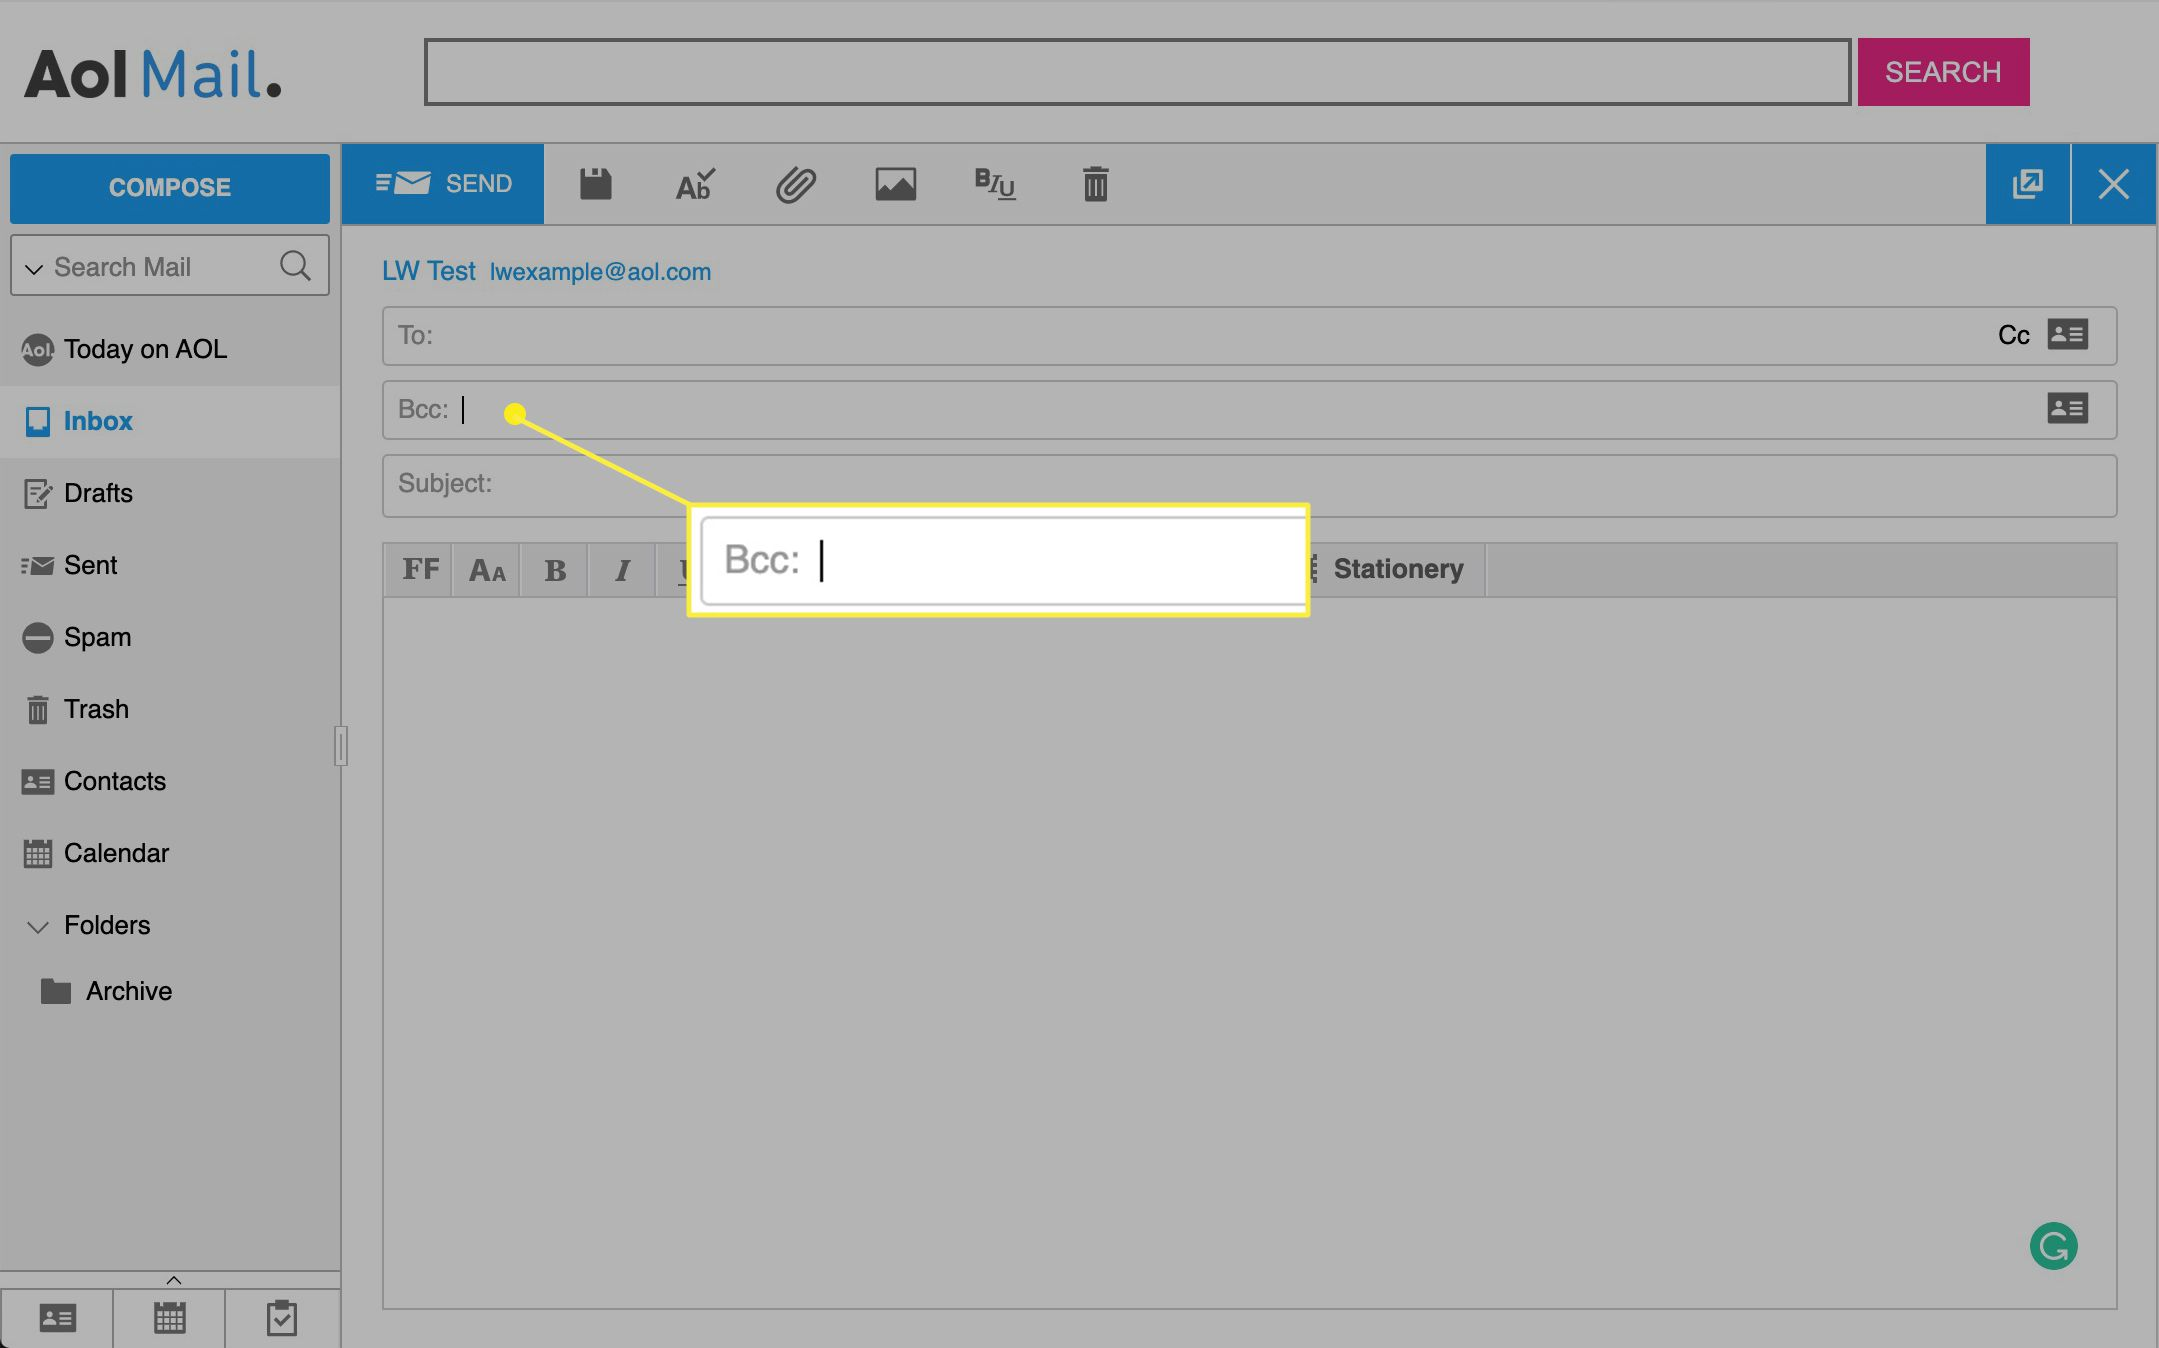 AOL mail with BCC field highlighted